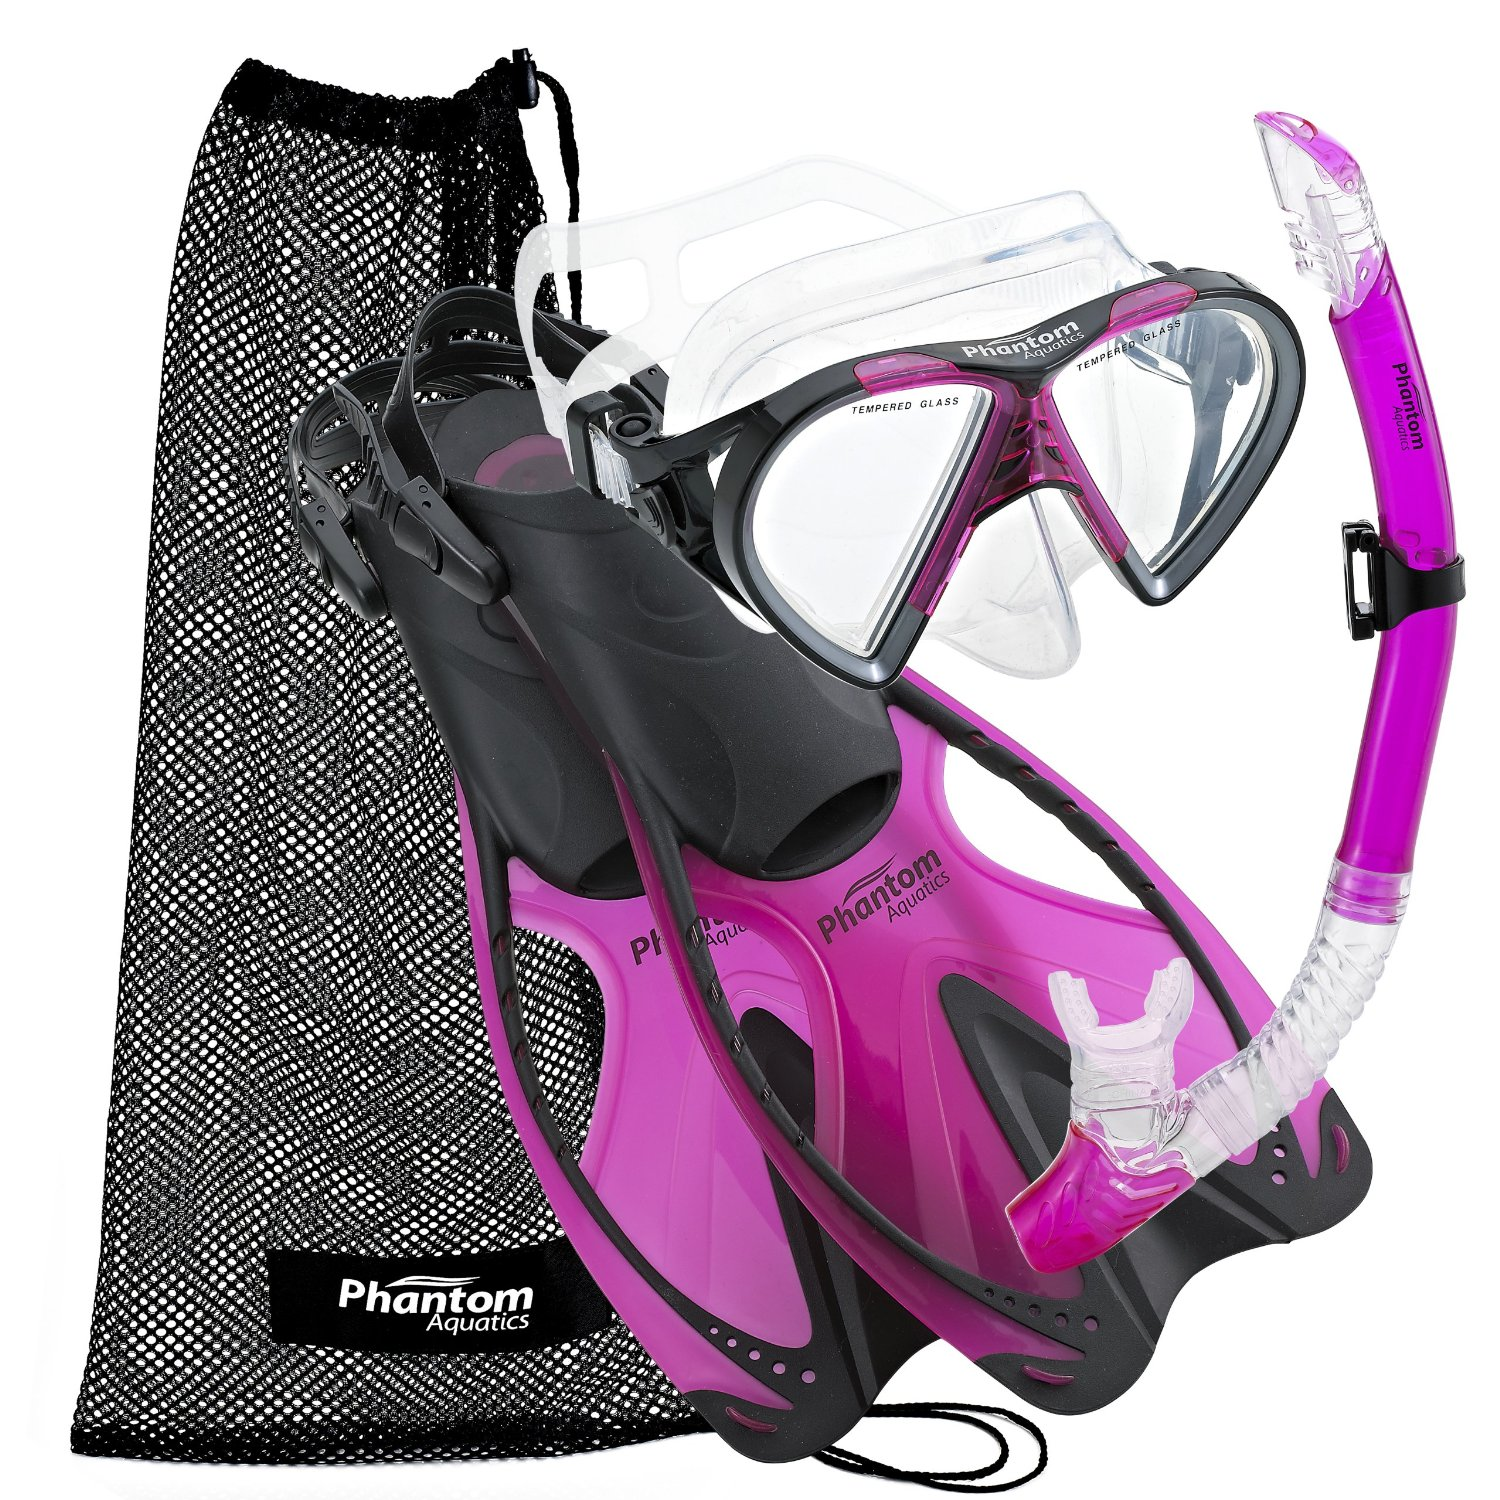 Phantom Aquatics Speed Sport Mask Fin Snorkel Set Adult, Pink - Large/X-Large/Size 9 to 13